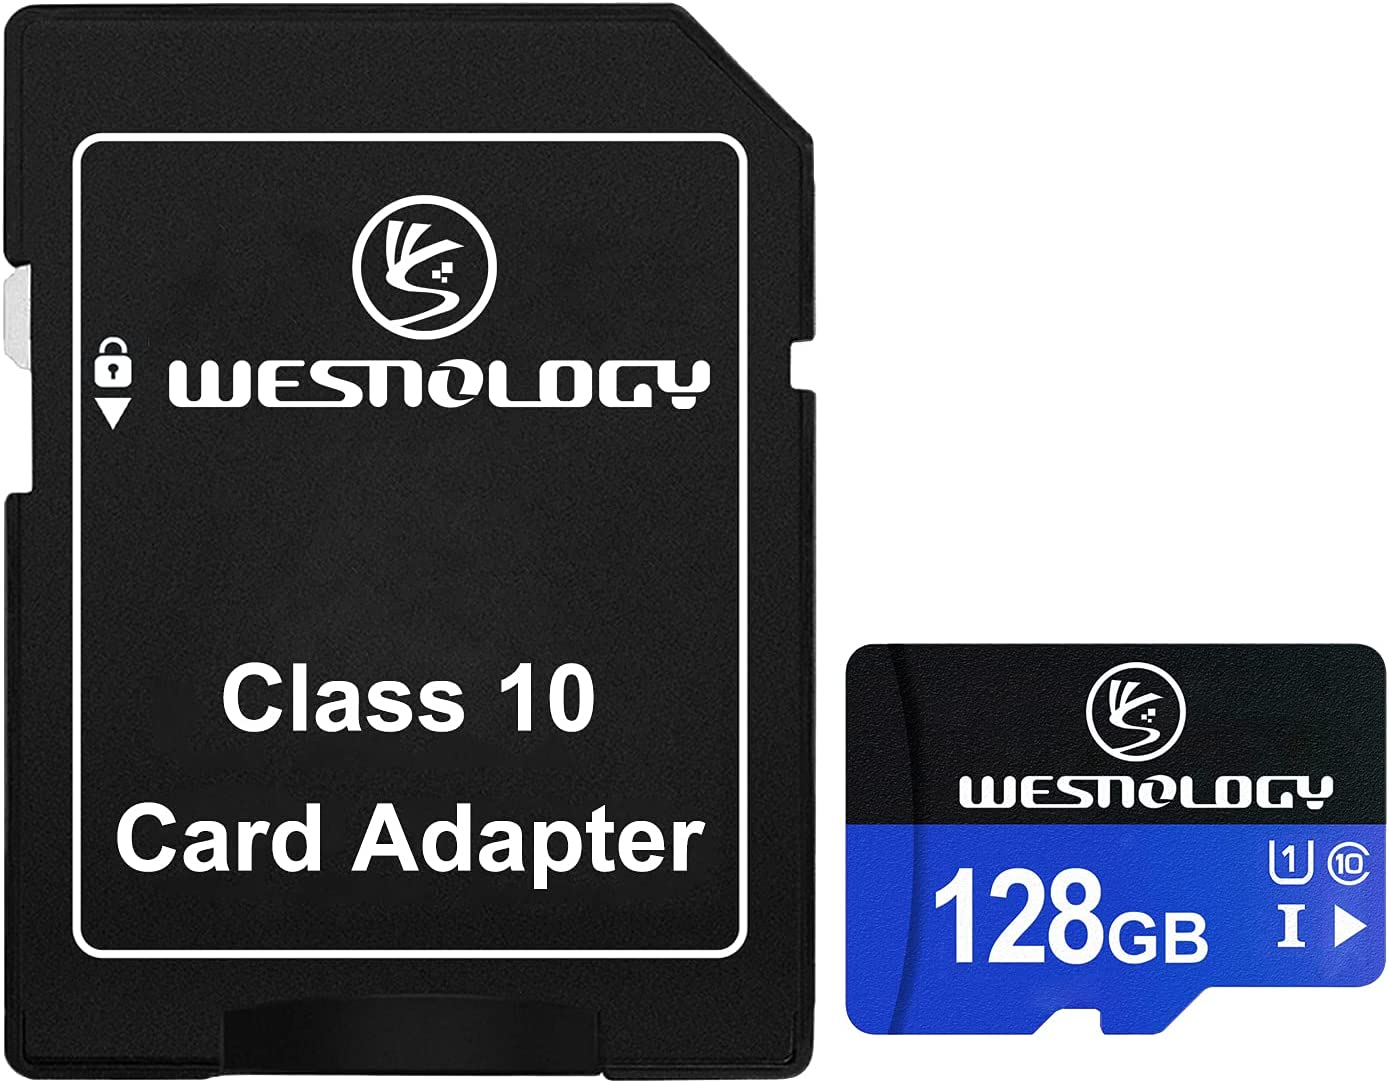 TF Card 128GB, Wesnology Memory Cards Class 10 TF Card with Adapter, High Speed Memory Card for Phone Camera Computer, Black/Blue